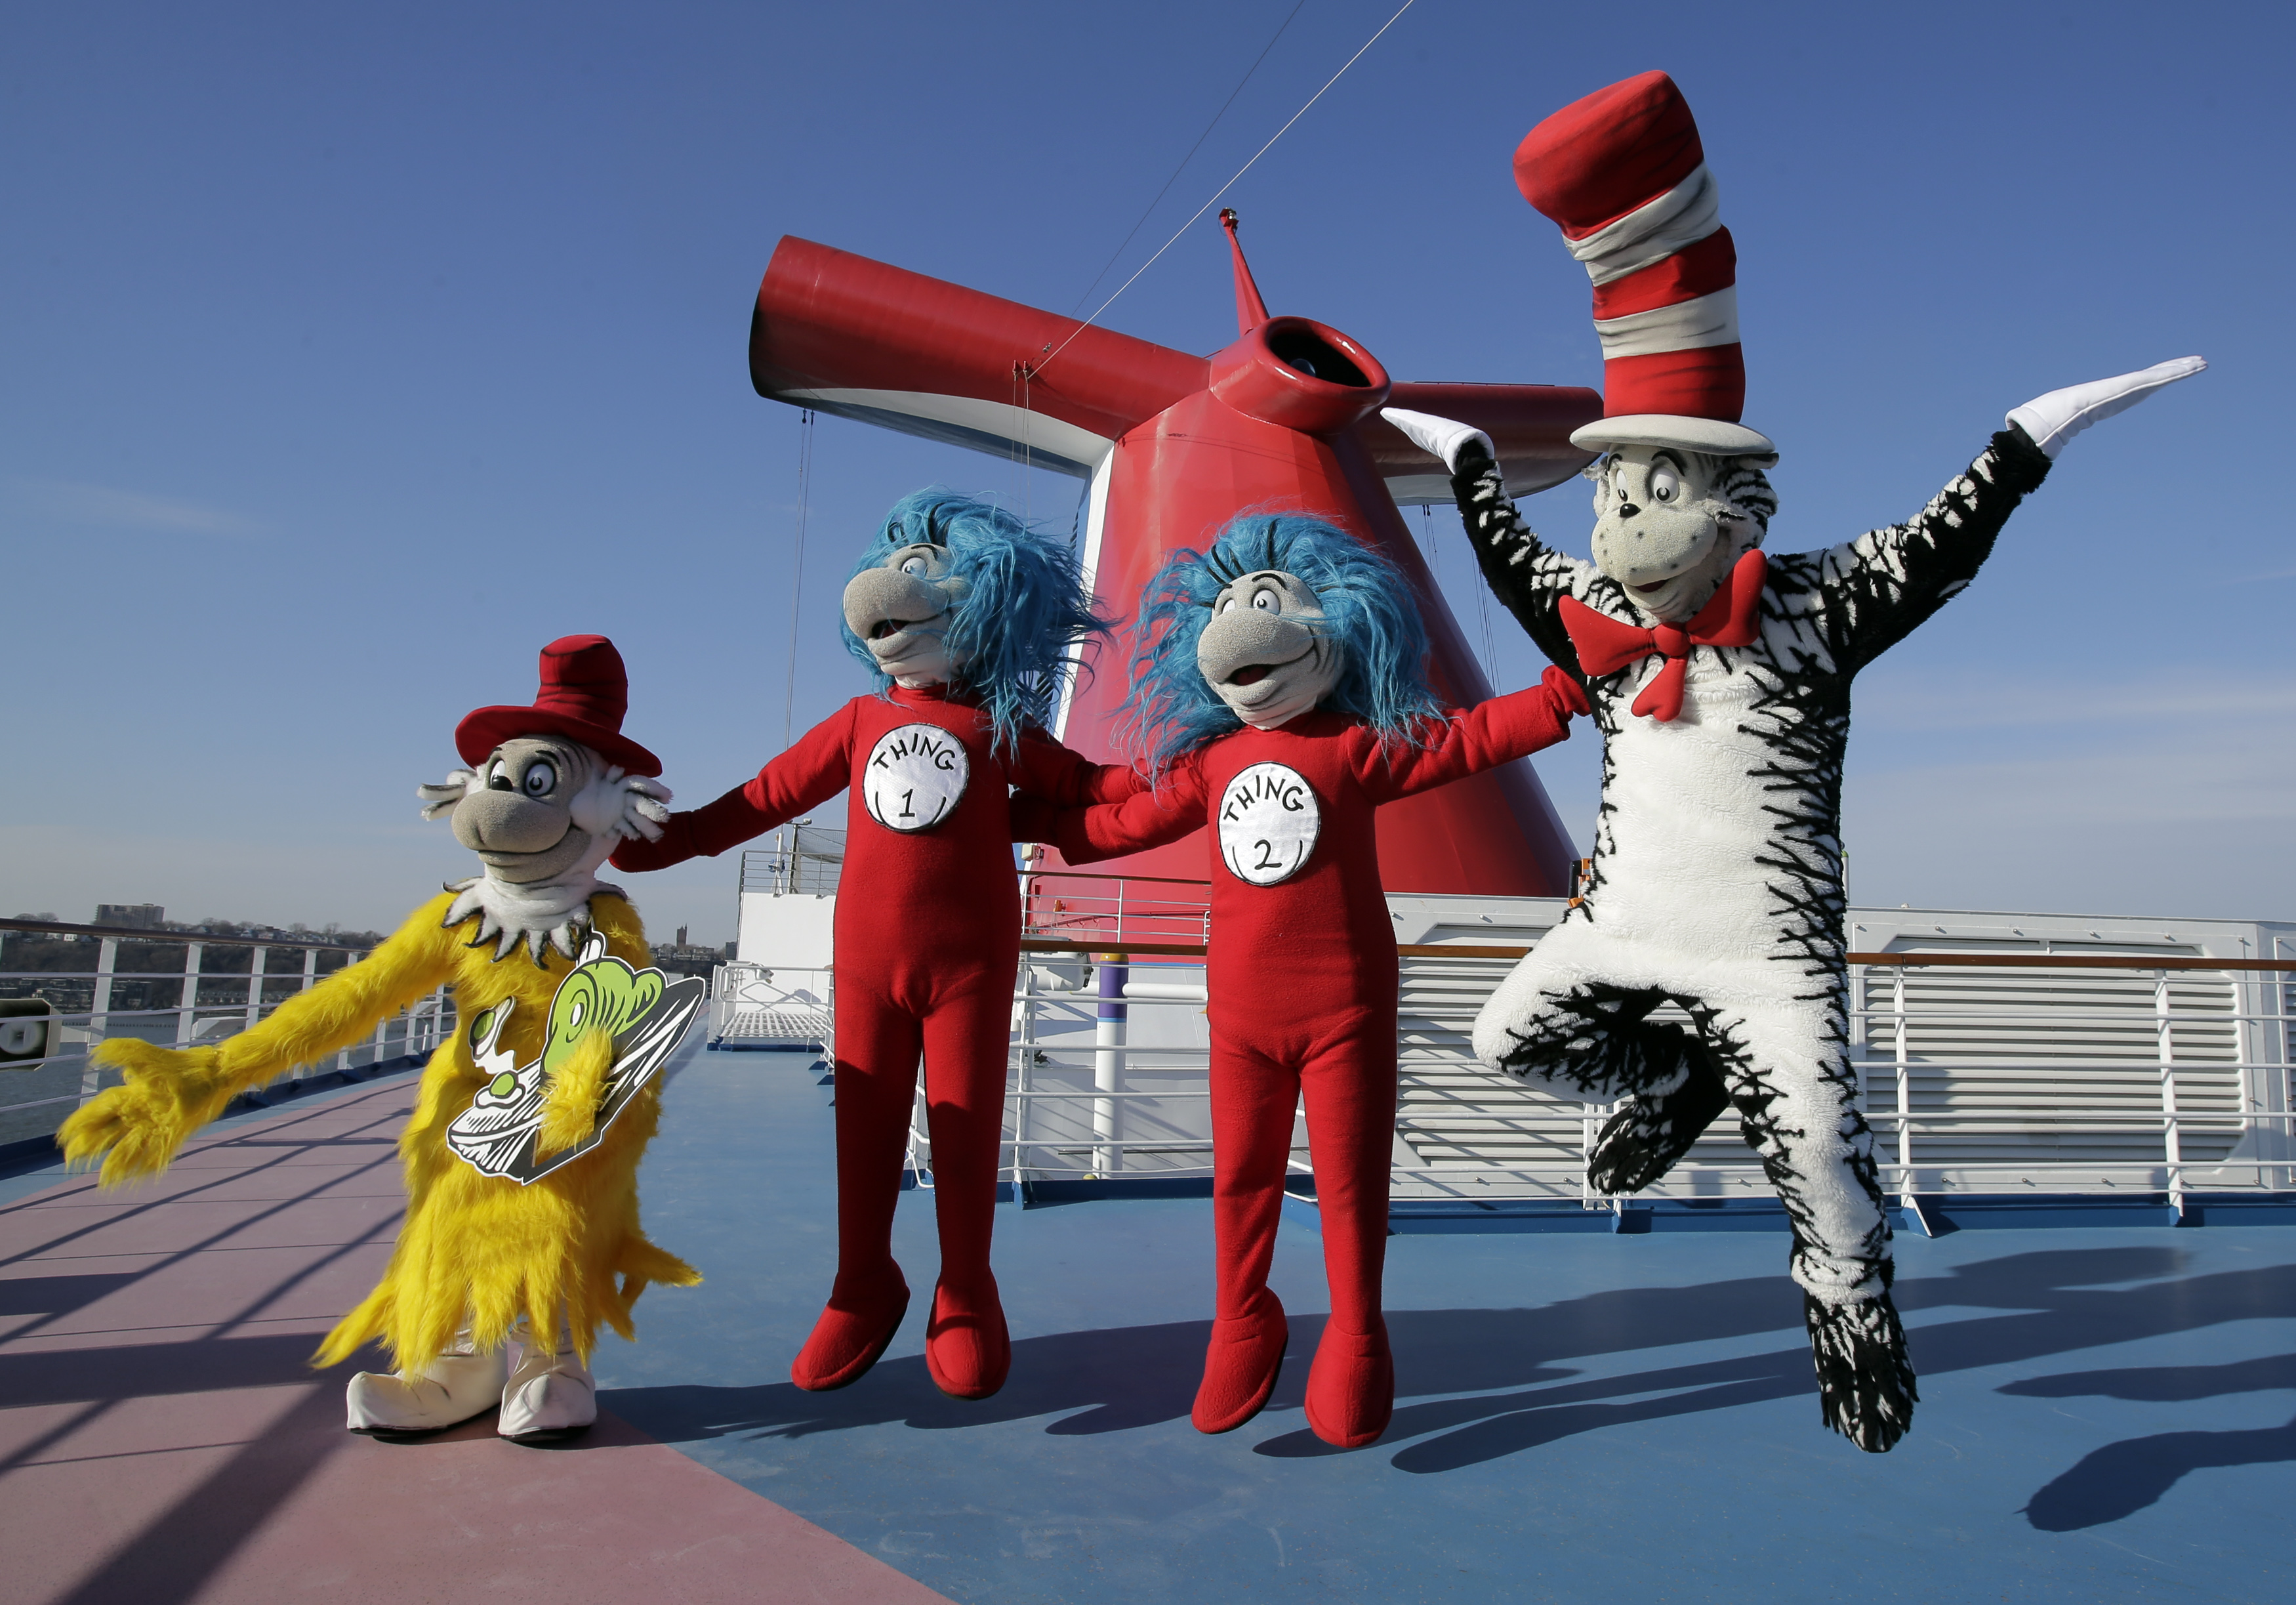 Fun Video Showcases Carnival's New Partnership with Dr. Seuss